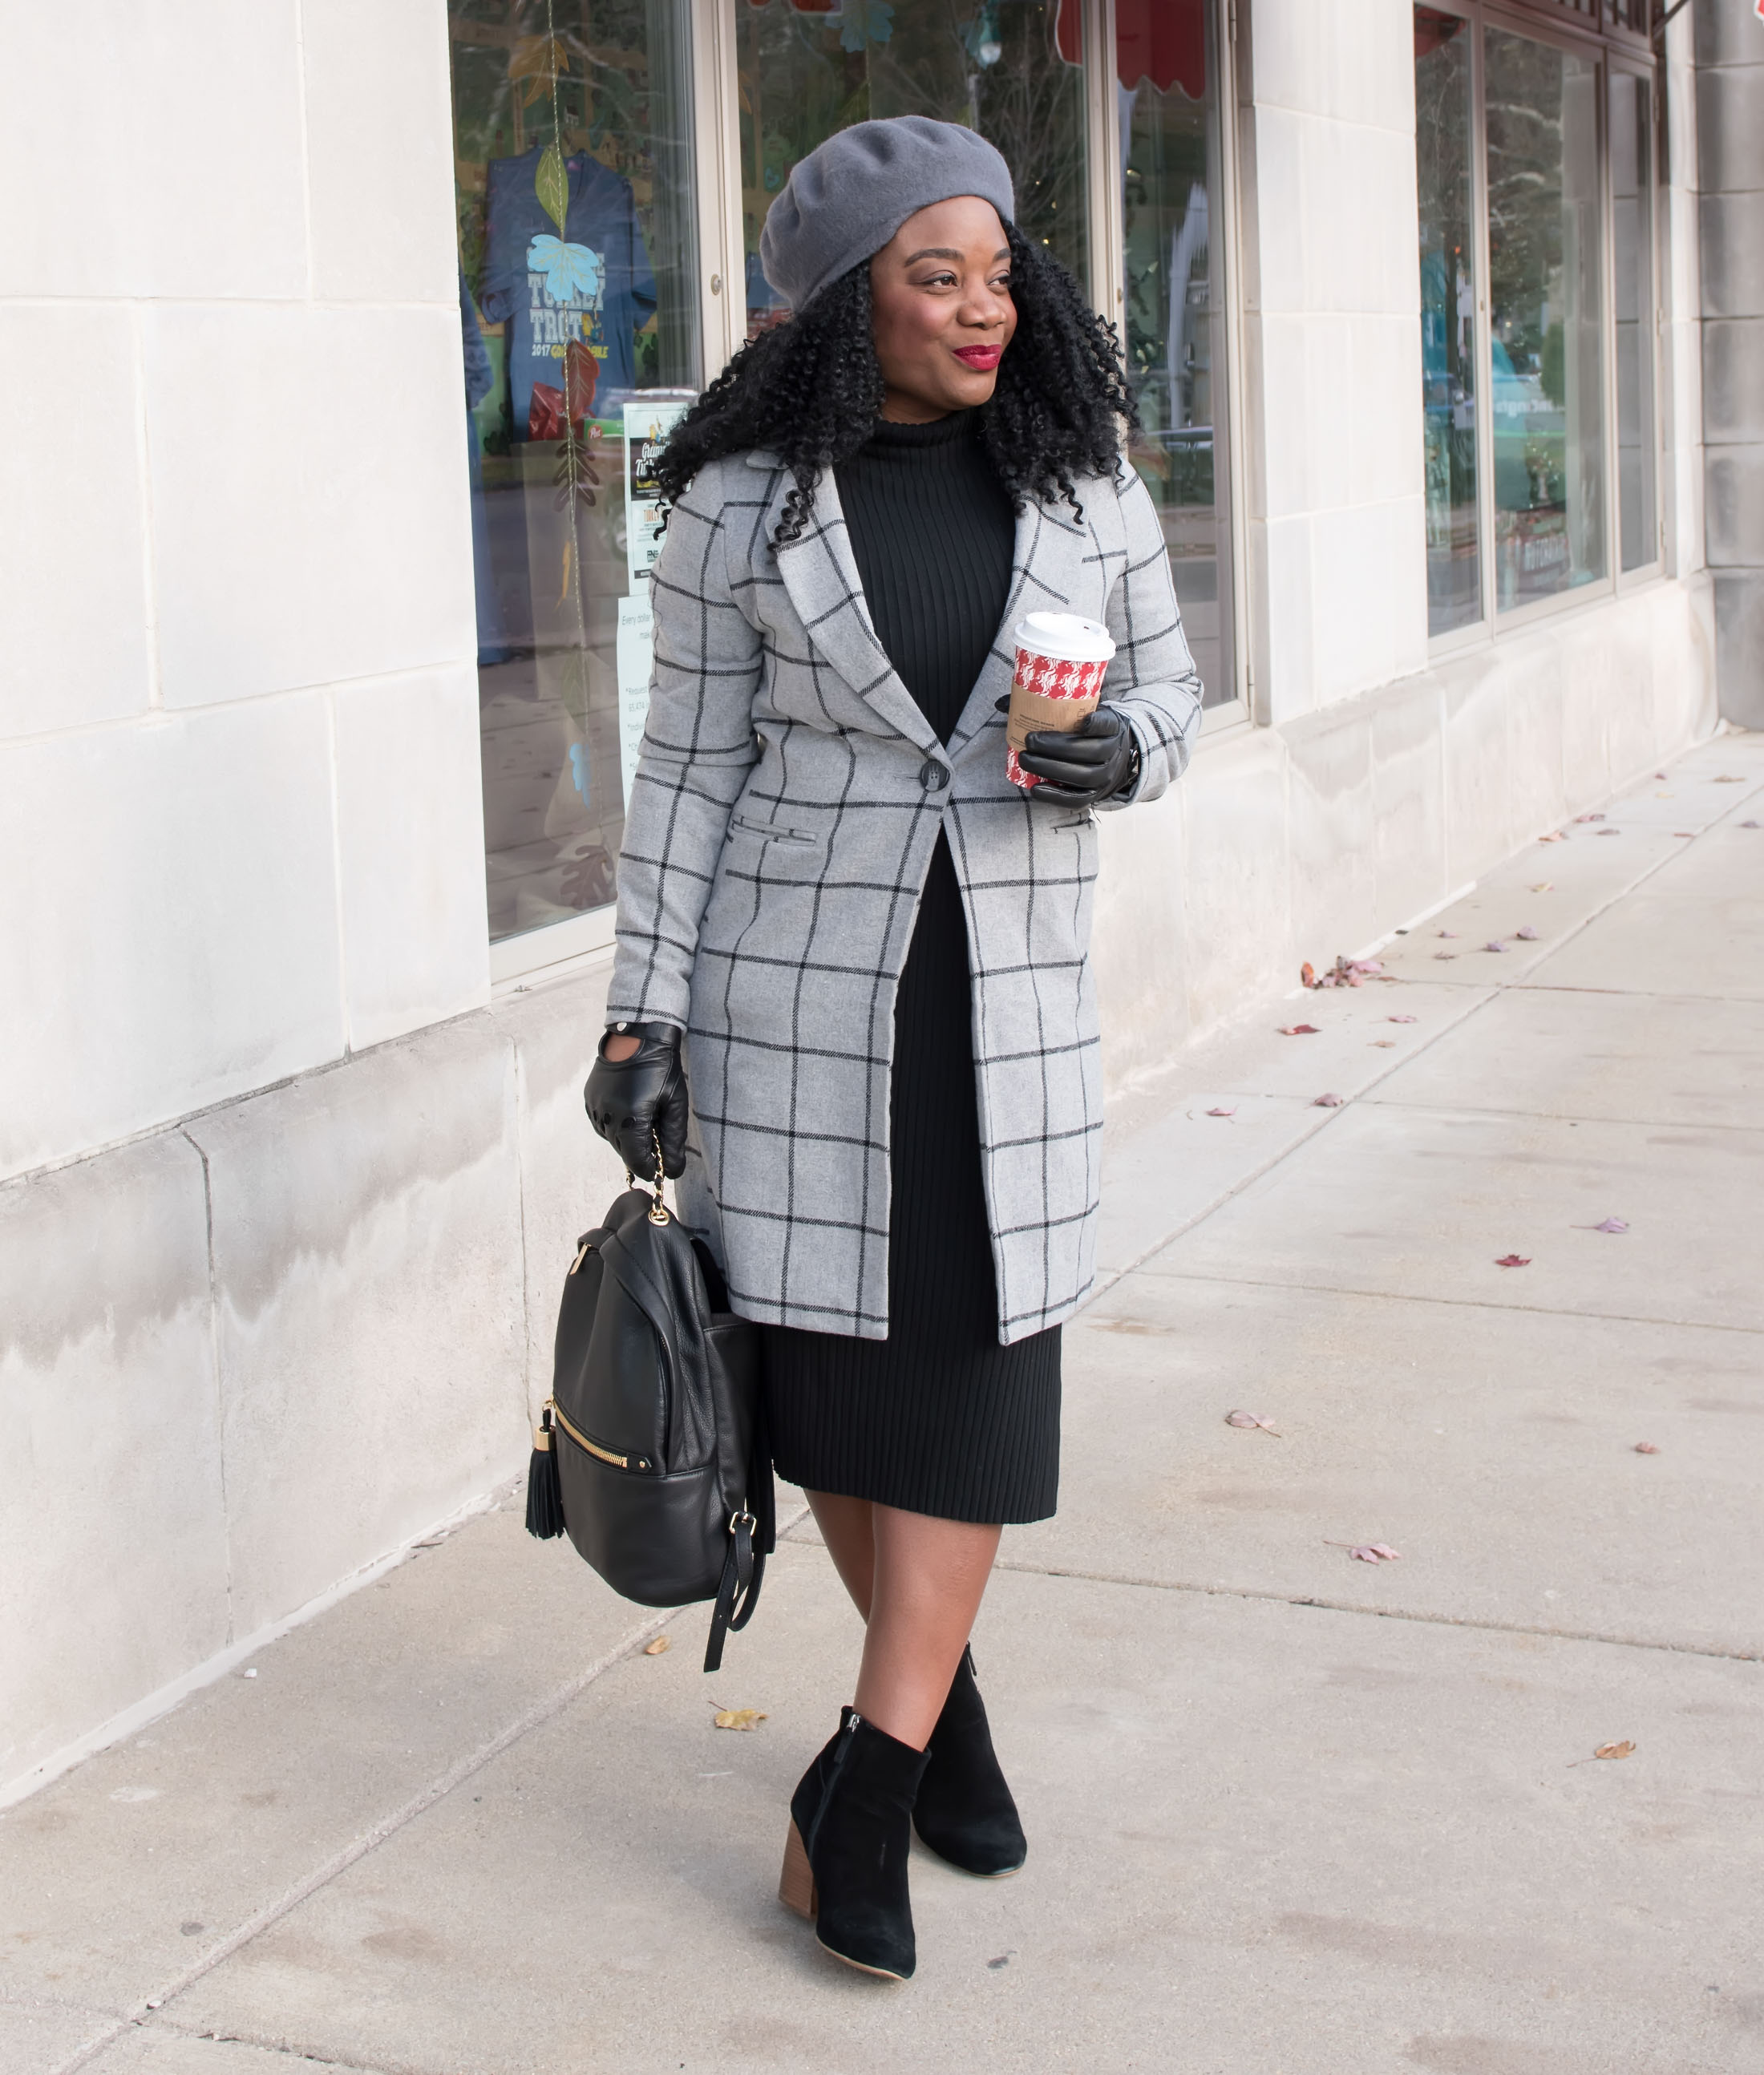 Leopard or plaid for the perfect statement coat? We're taking a walk on the style side & mixing prints & contrasting colors. Take a chic risk with us!